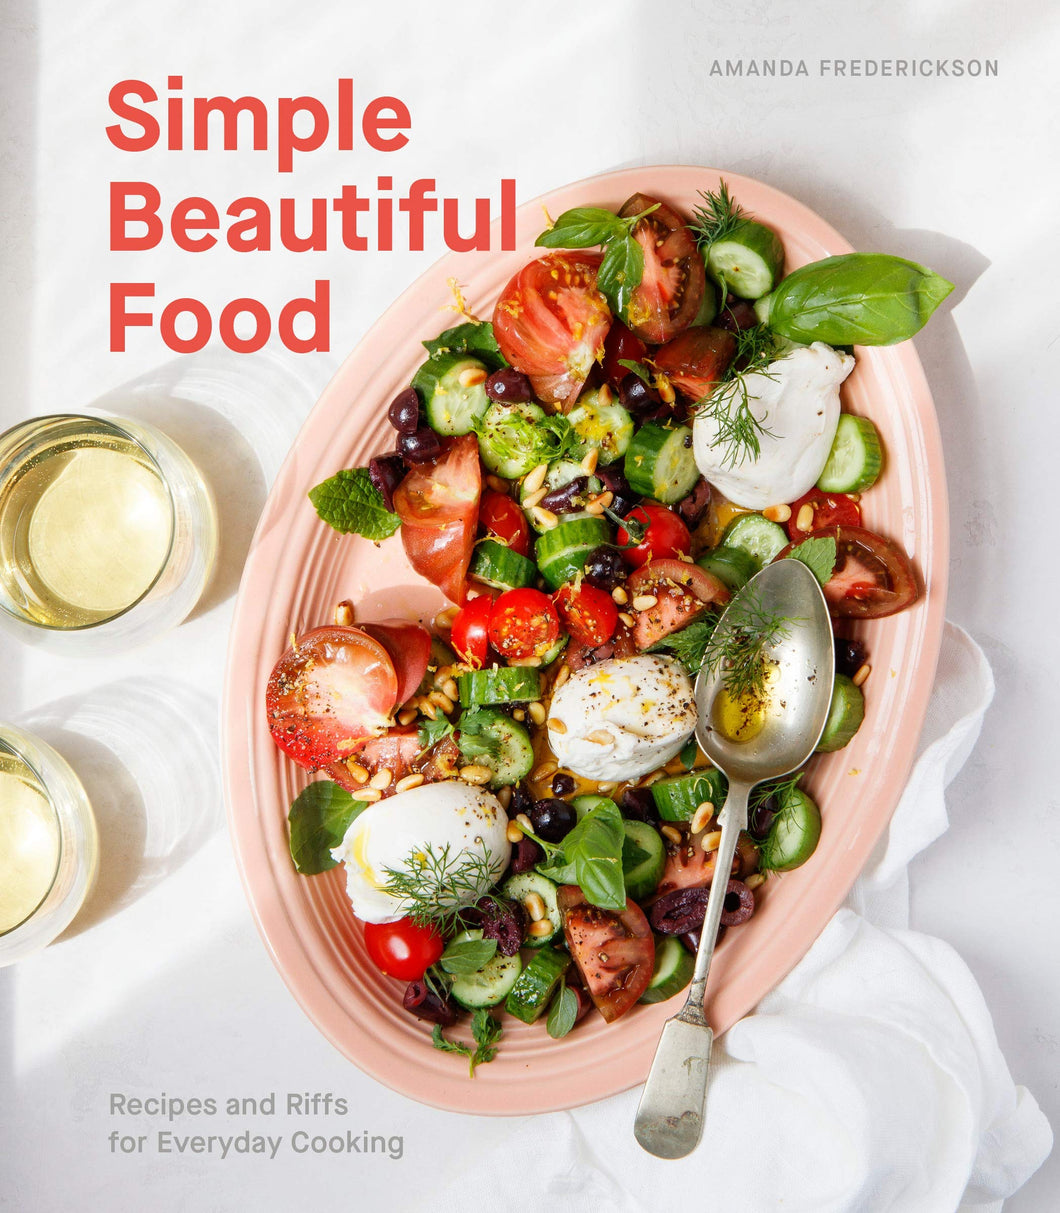 Simple Beautiful, Food-Recipes: and Riffs, for Everyday Cooking. - Tolerant Planet